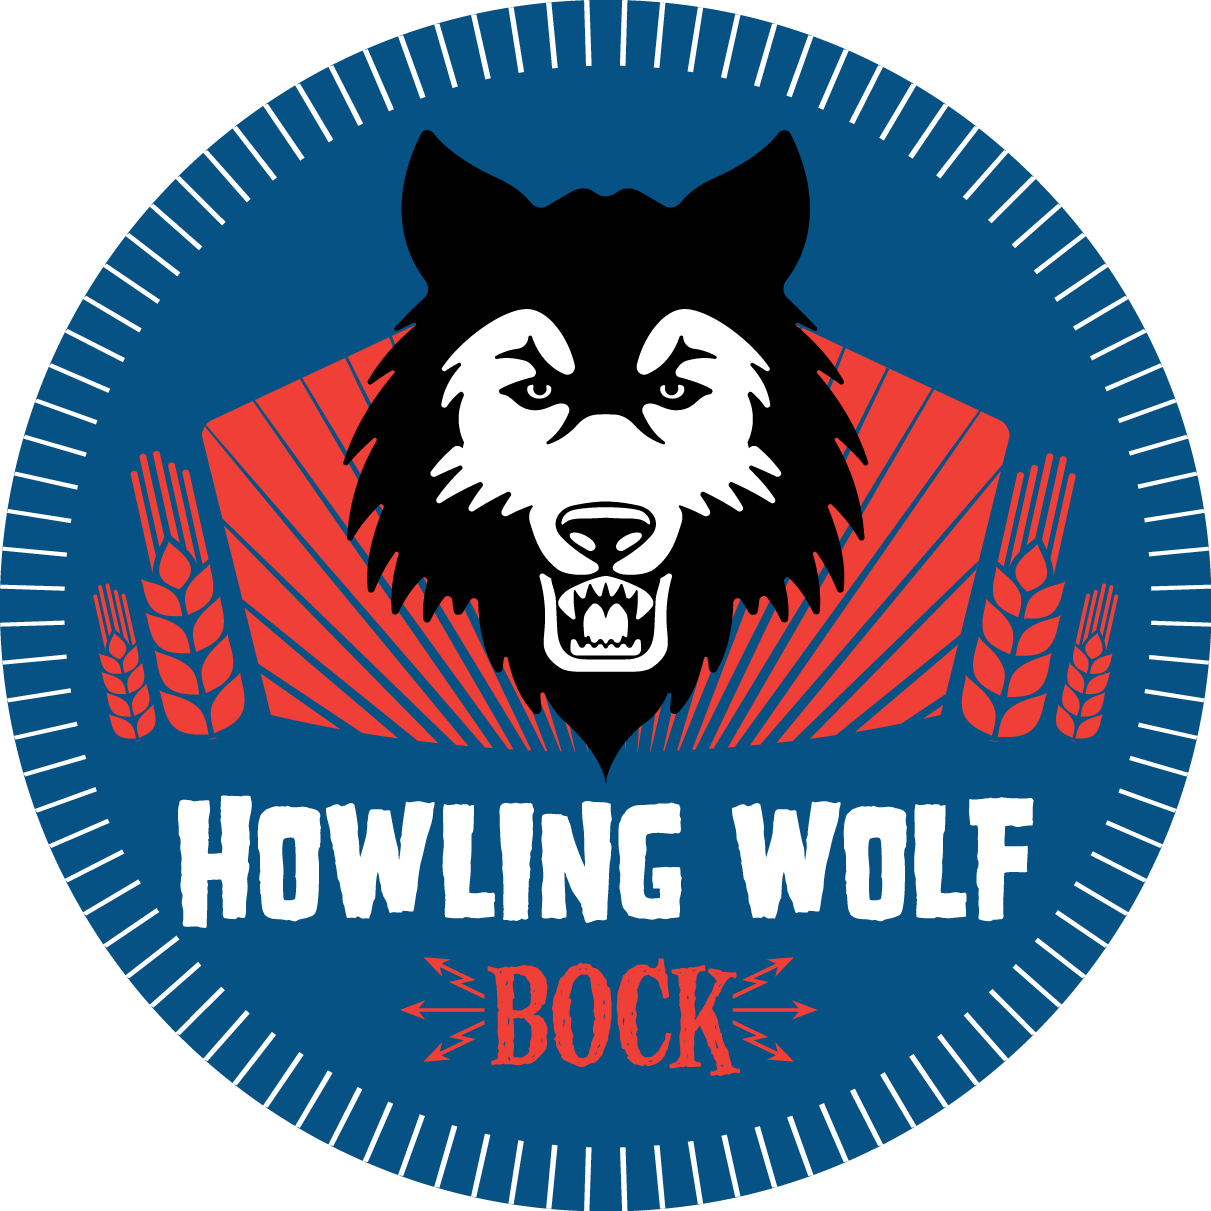 Animal army brewery howling wolf bock beer logo